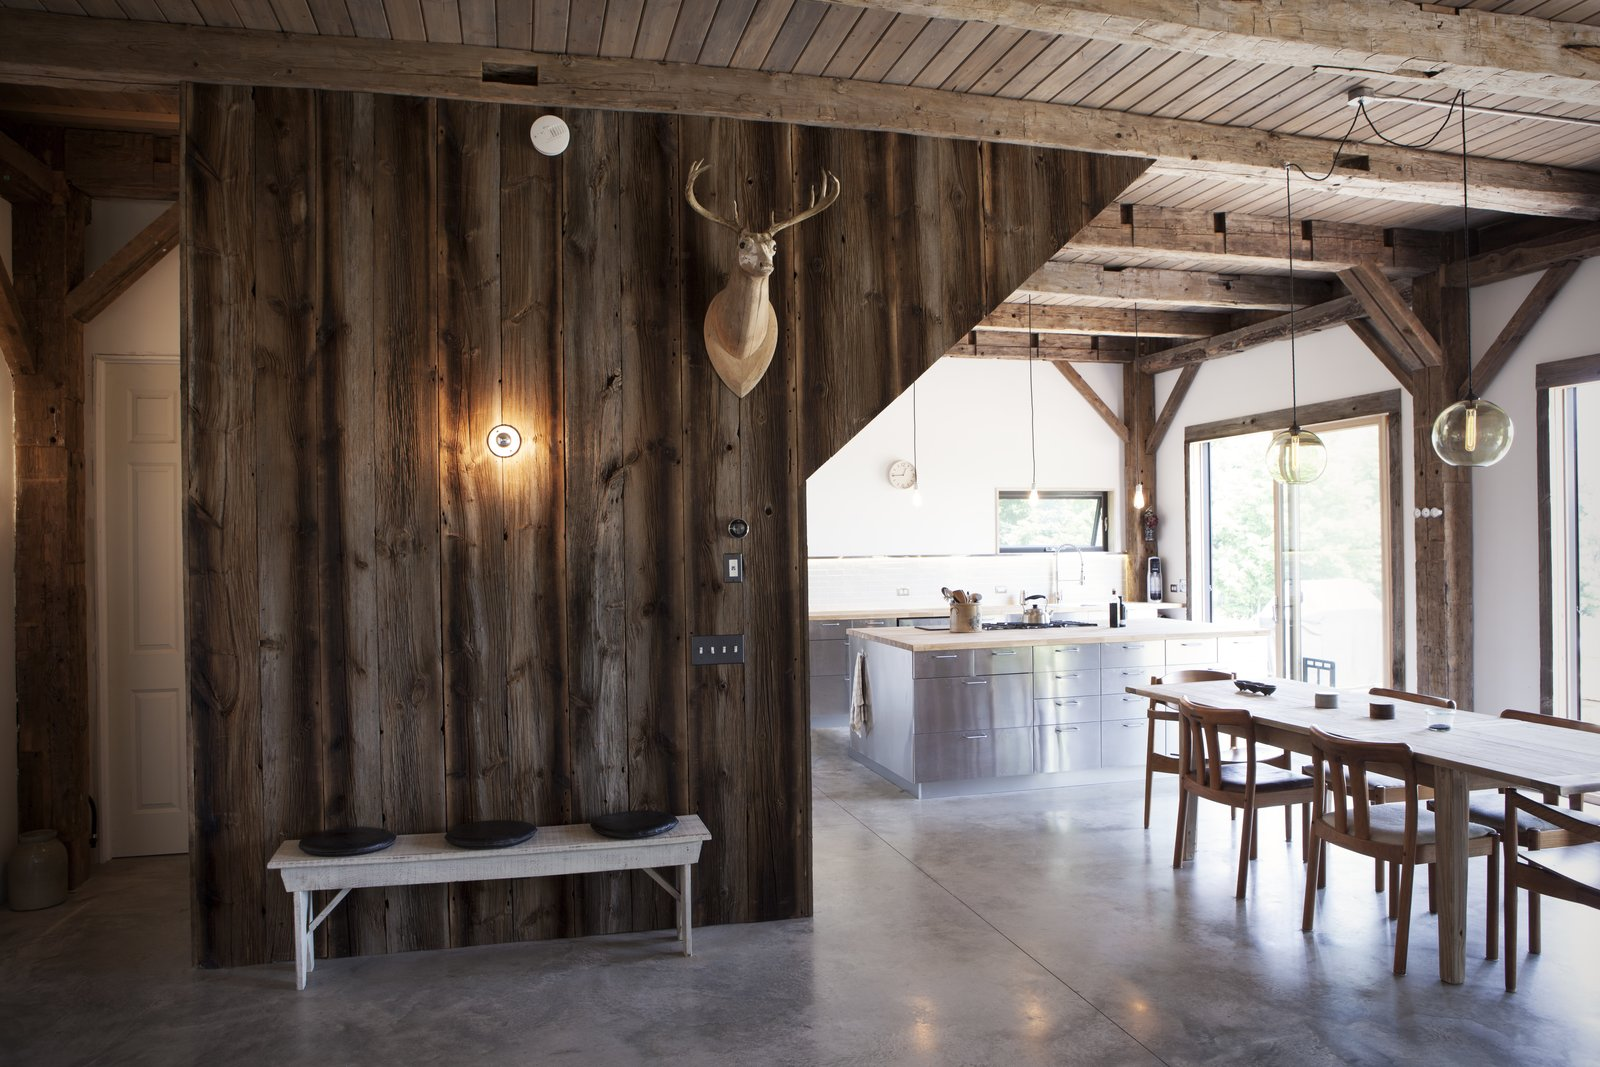 "The cabin's basic structure was reclaimed from a barn built in 1840 and purchased from Heritage Barns out of Waco, Texas. The same company supplied the recycled wood that clads the walls, though the ceiling boards are new. ""We stained them with a gray wash to match the tones of the post and beam, but with a more clean look,"" Bronee explains. The concrete floors were polished and waxed for a sleek finish. Tagged: Kitchen, Metal Cabinet, Concrete Floor, Pendant Lighting, and Wall Lighting.  Photo 7 of 8 in 8 Beautiful Home Projects Using Reclaimed Wood from A Slice of Scandinavian Design in the Catskills"